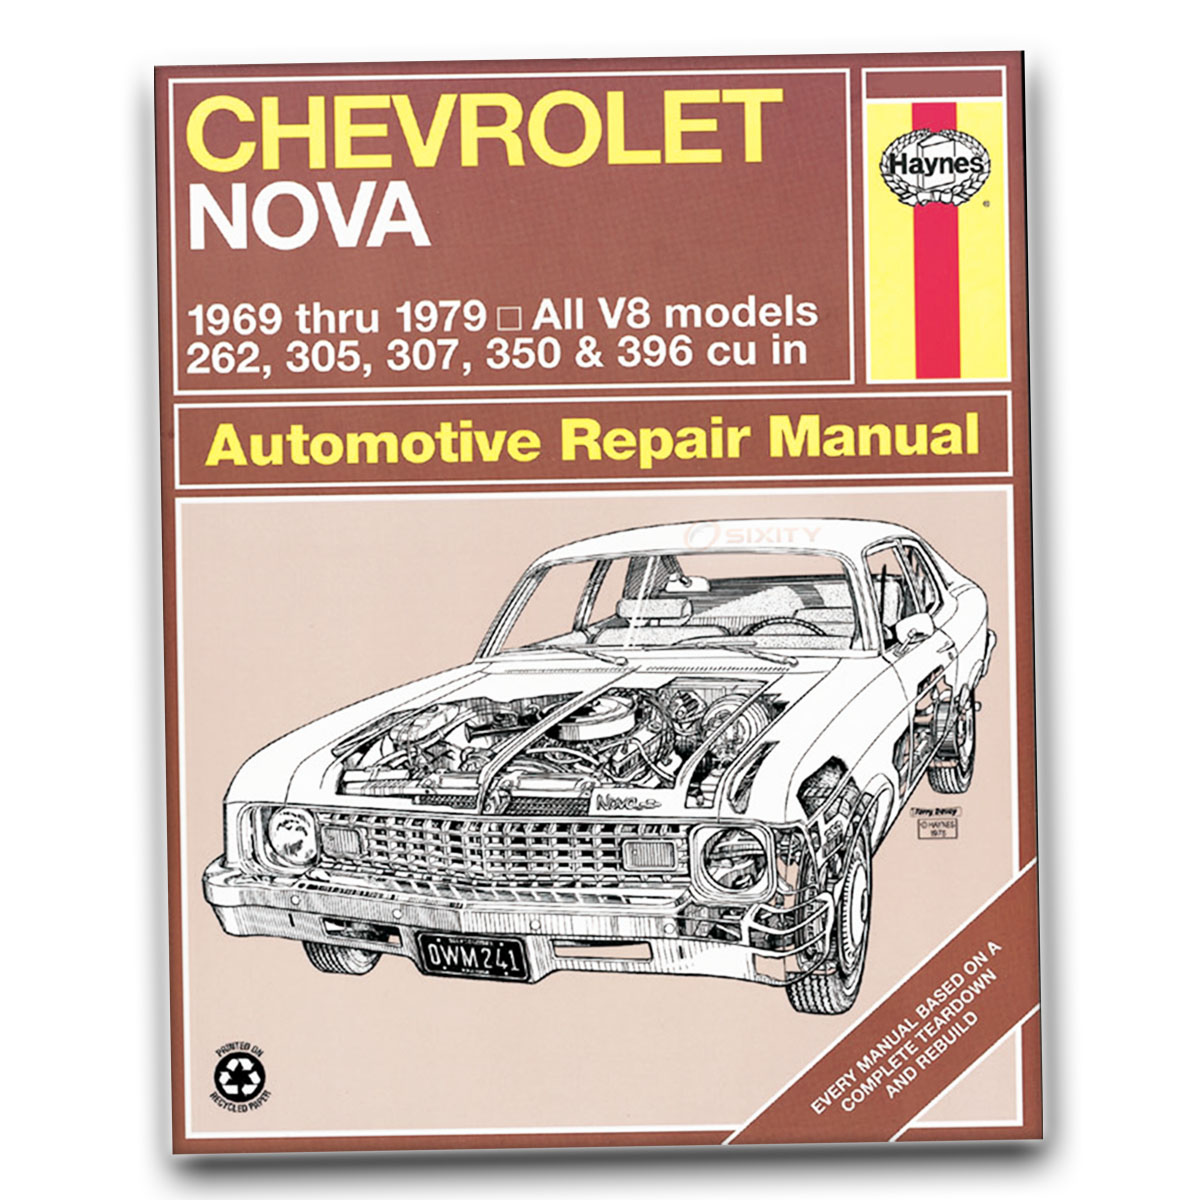 1979 chevy shop manual user guide manual that easy to read u2022 rh sibere co 2007 mini cooper owners manual pdf mini cooper owners manual 2005